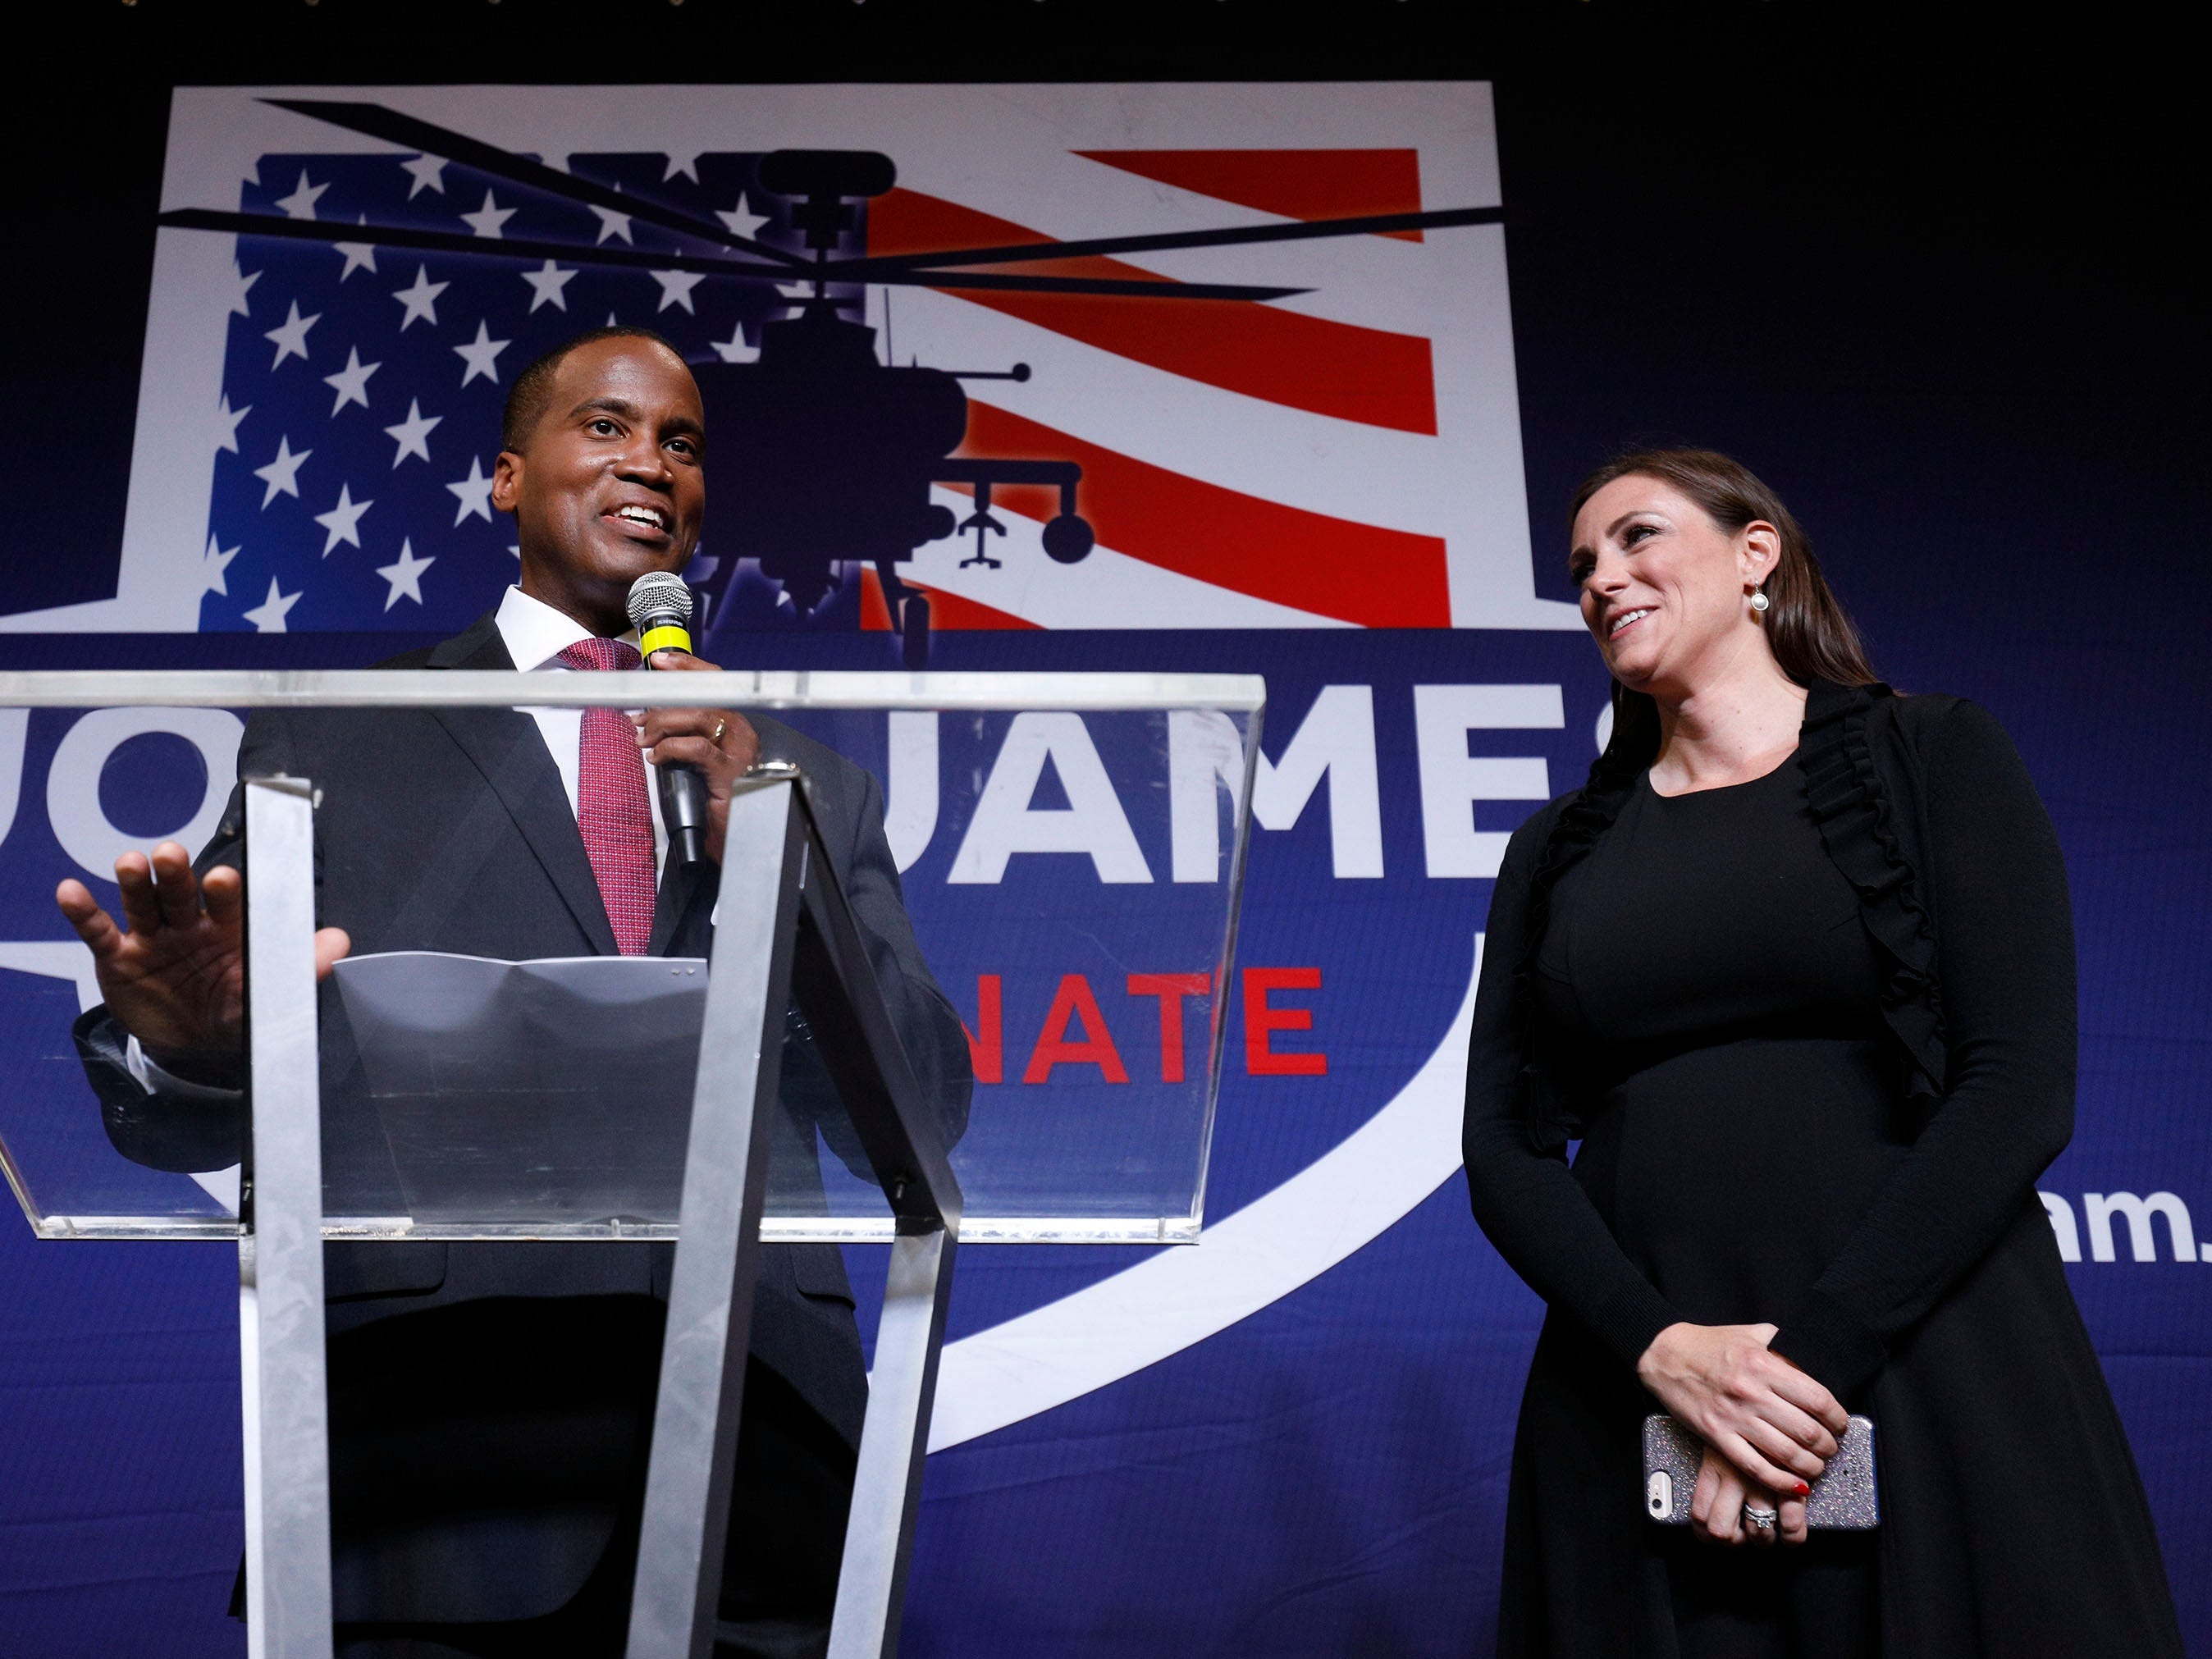 John James, Michigan GOP Senate candidate, celebrates with his wife Elizabeth at an election night event after winning his primary election at his business, James Group International  August 7, 2018 in Detroit, Michigan. James, who has President Donald Trump's endorsement, will face Democrat incumbent Senator Debbie Stabenow (D-MI) in November.